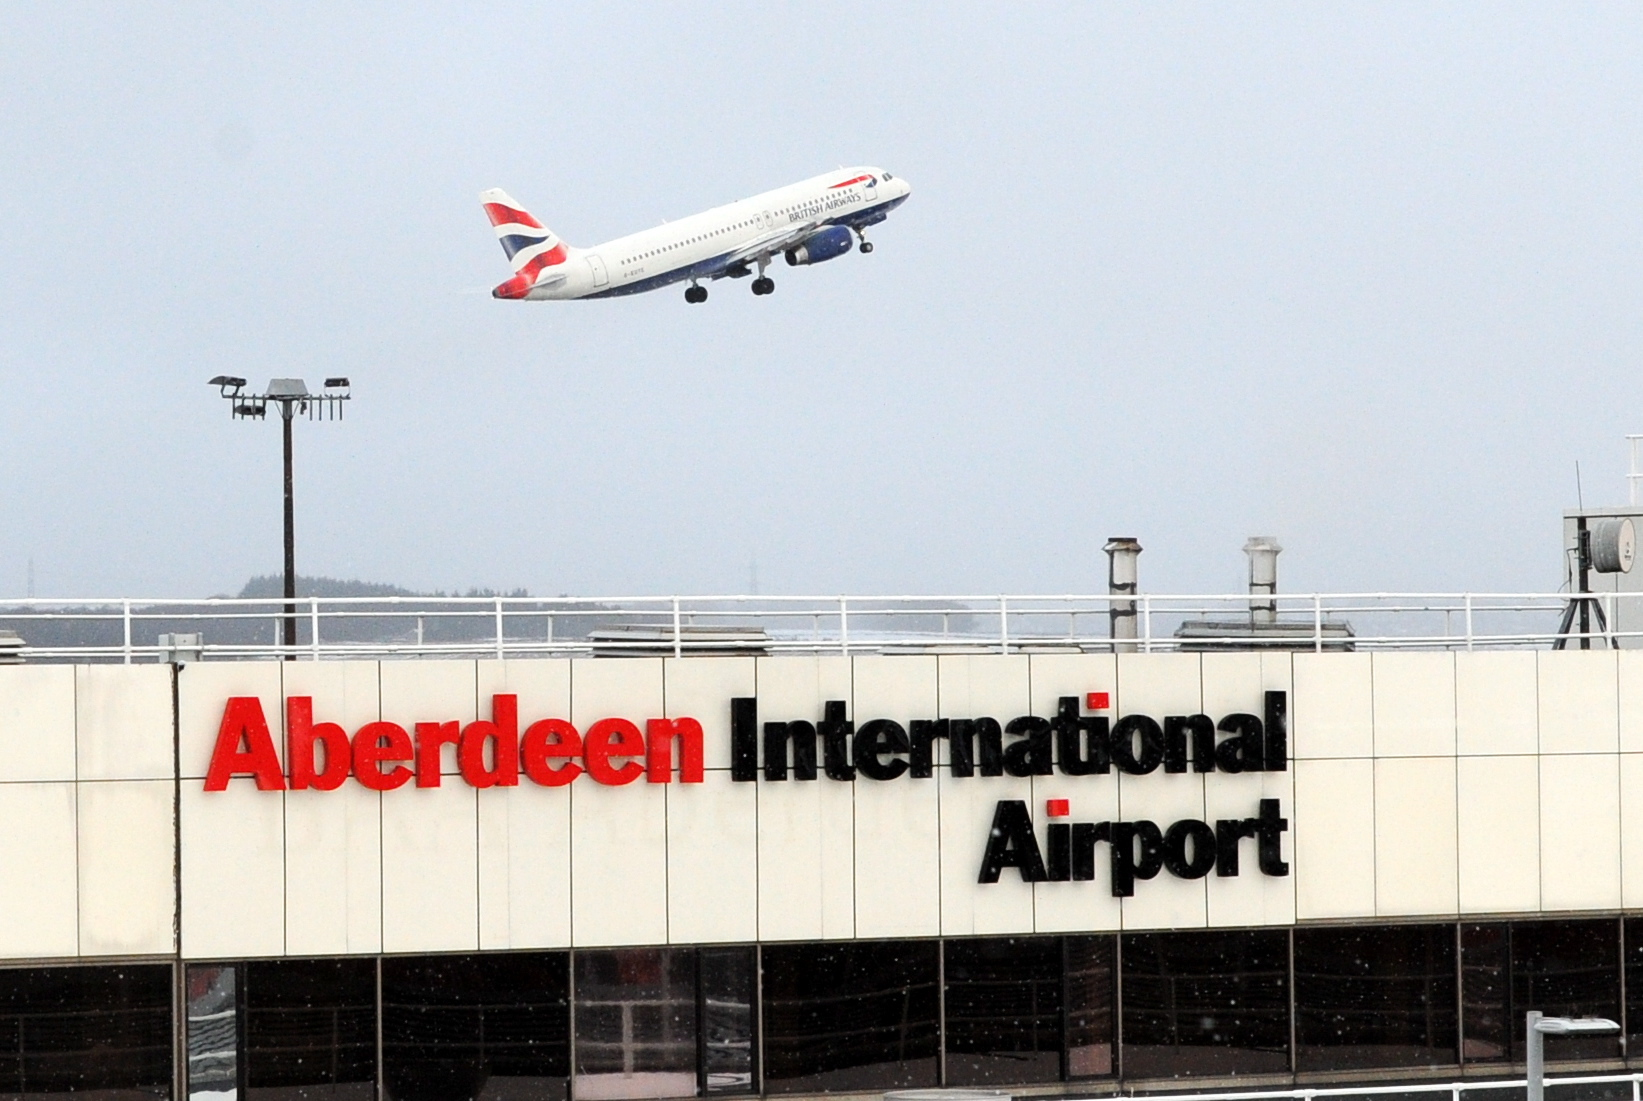 New rapid COVID-19 testing facilities have been introduced at Aberdeen International and Glasgow airports.